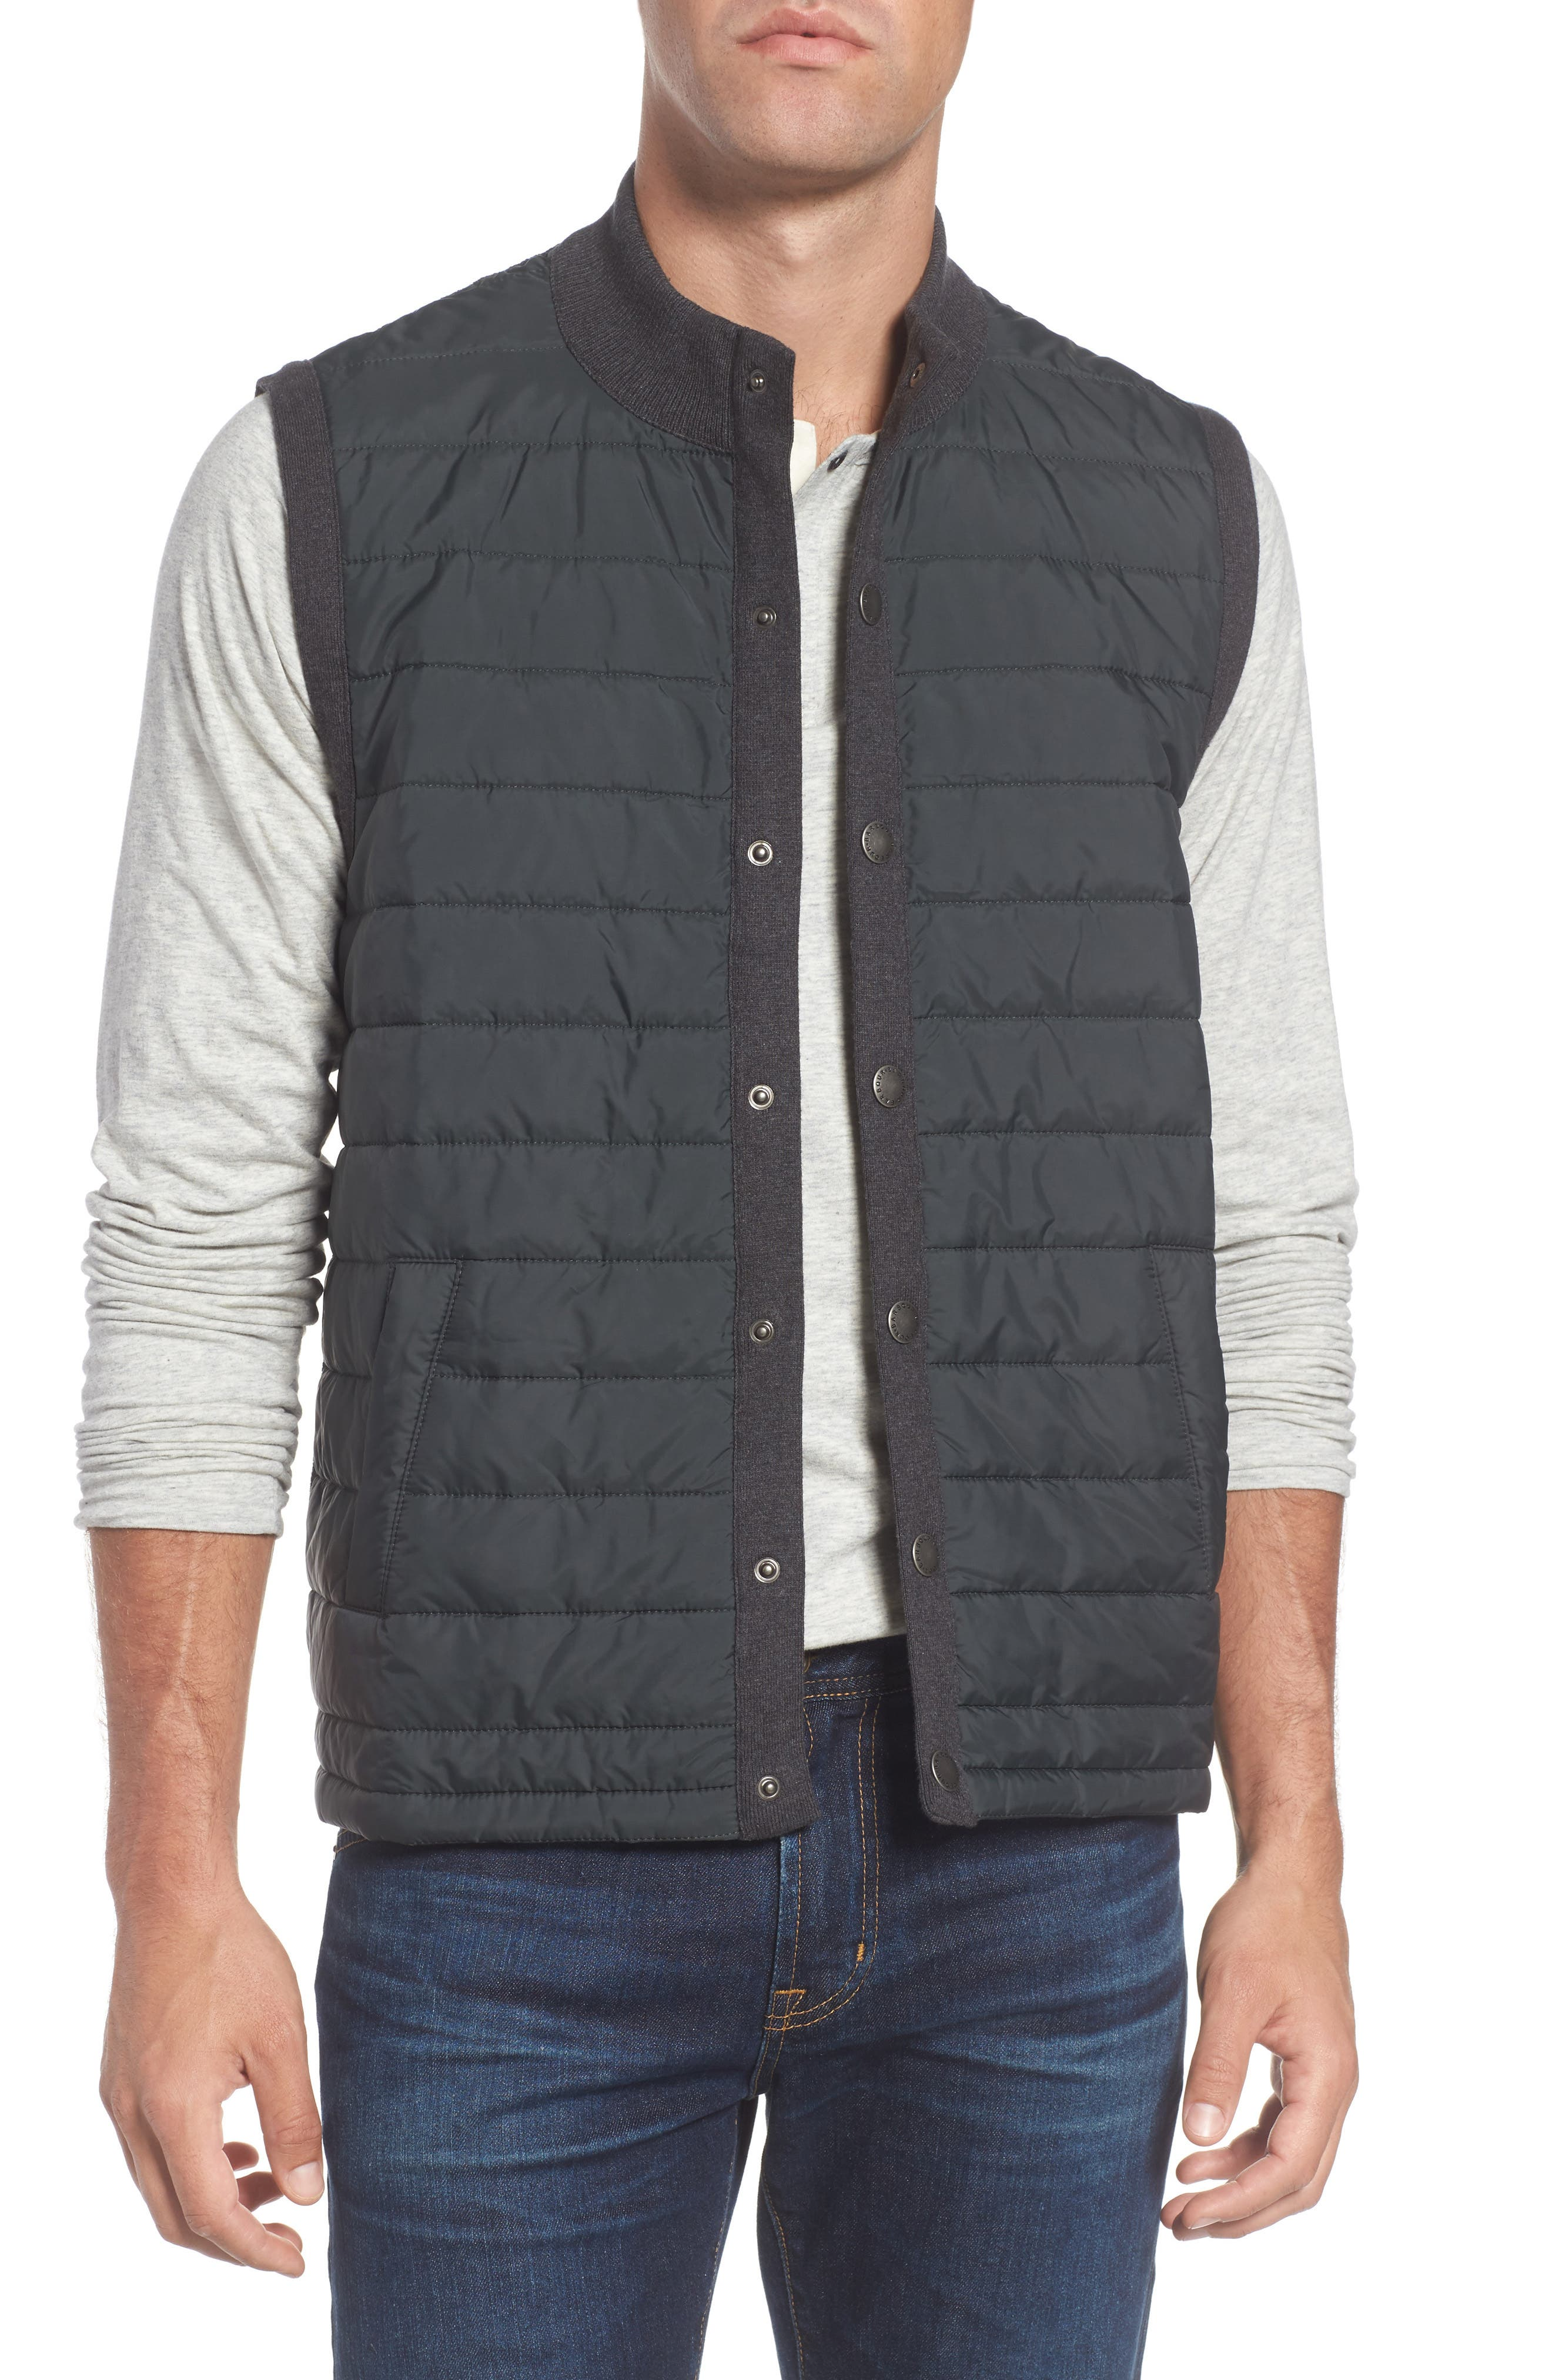 'Essential' Tailored Fit Mixed Media Vest,                             Main thumbnail 1, color,                             020